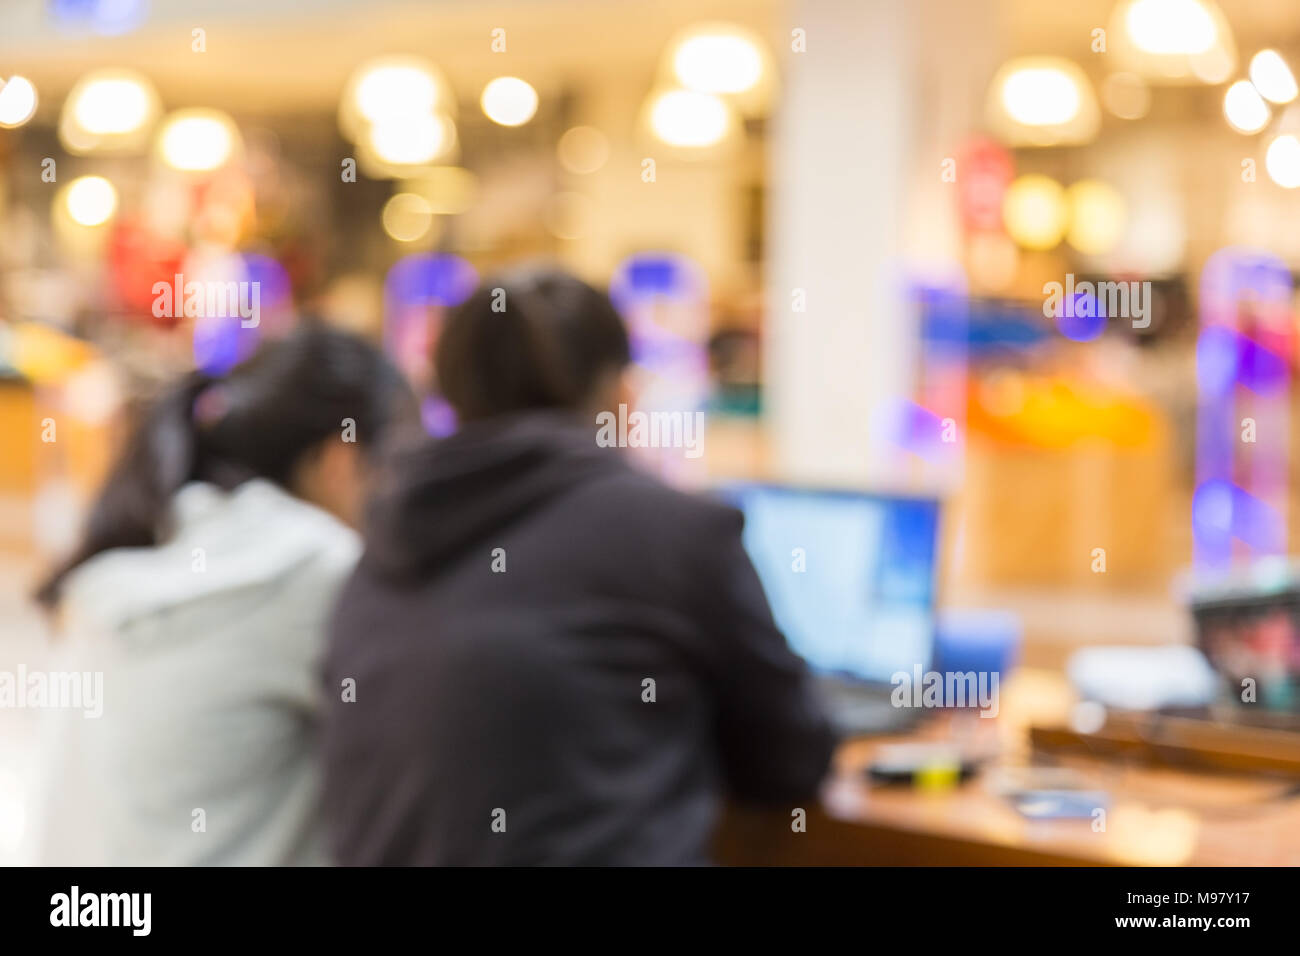 Blurred, out of focus, image of two people working on their computer in a brightly lit public place, good for any theme background - Stock Image